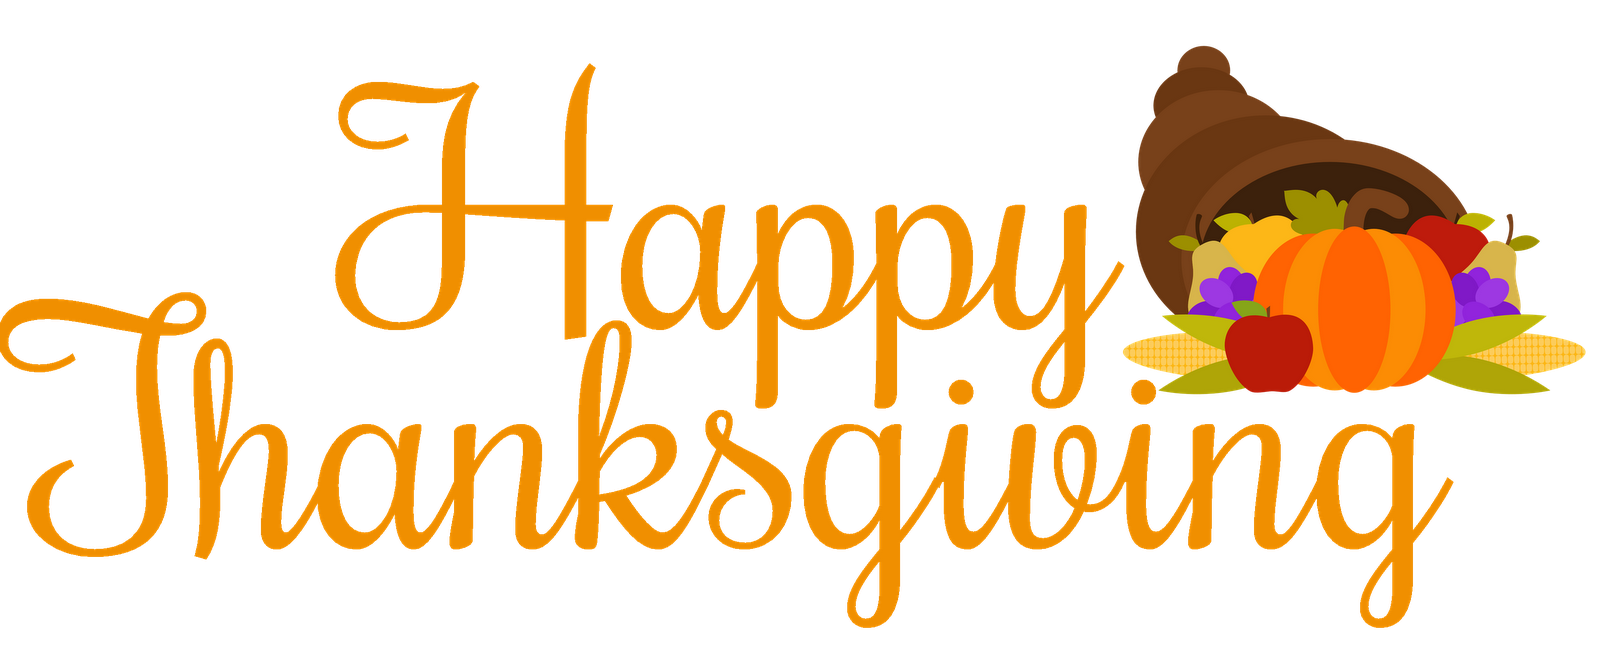 Excited clipart thankful. Thanksgiving saturday northshore health